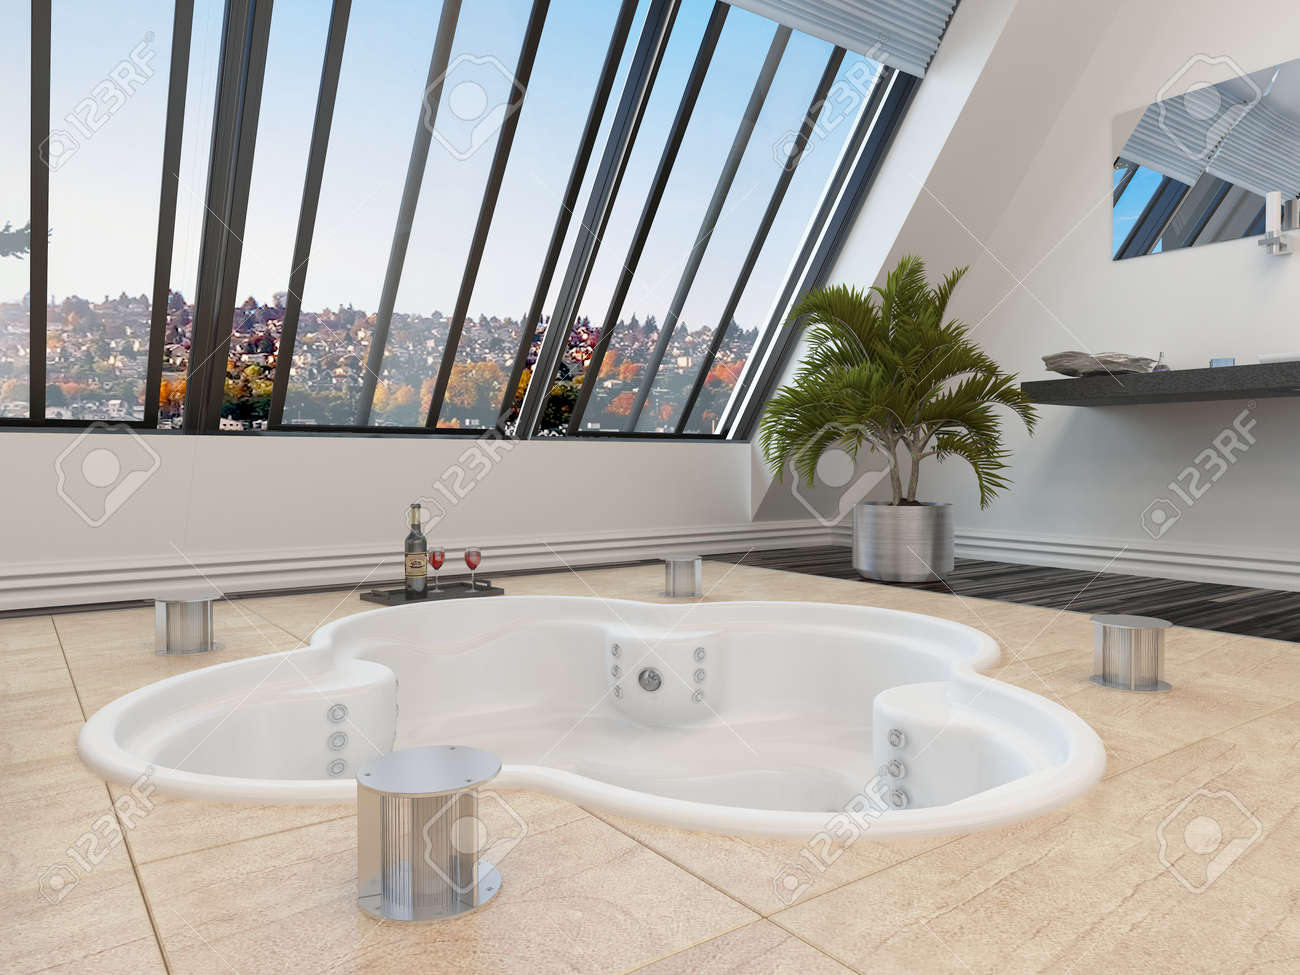 Sunken Trefoil Shaped Hot Tub Or Spa Bath In A Modern Bathroom ...